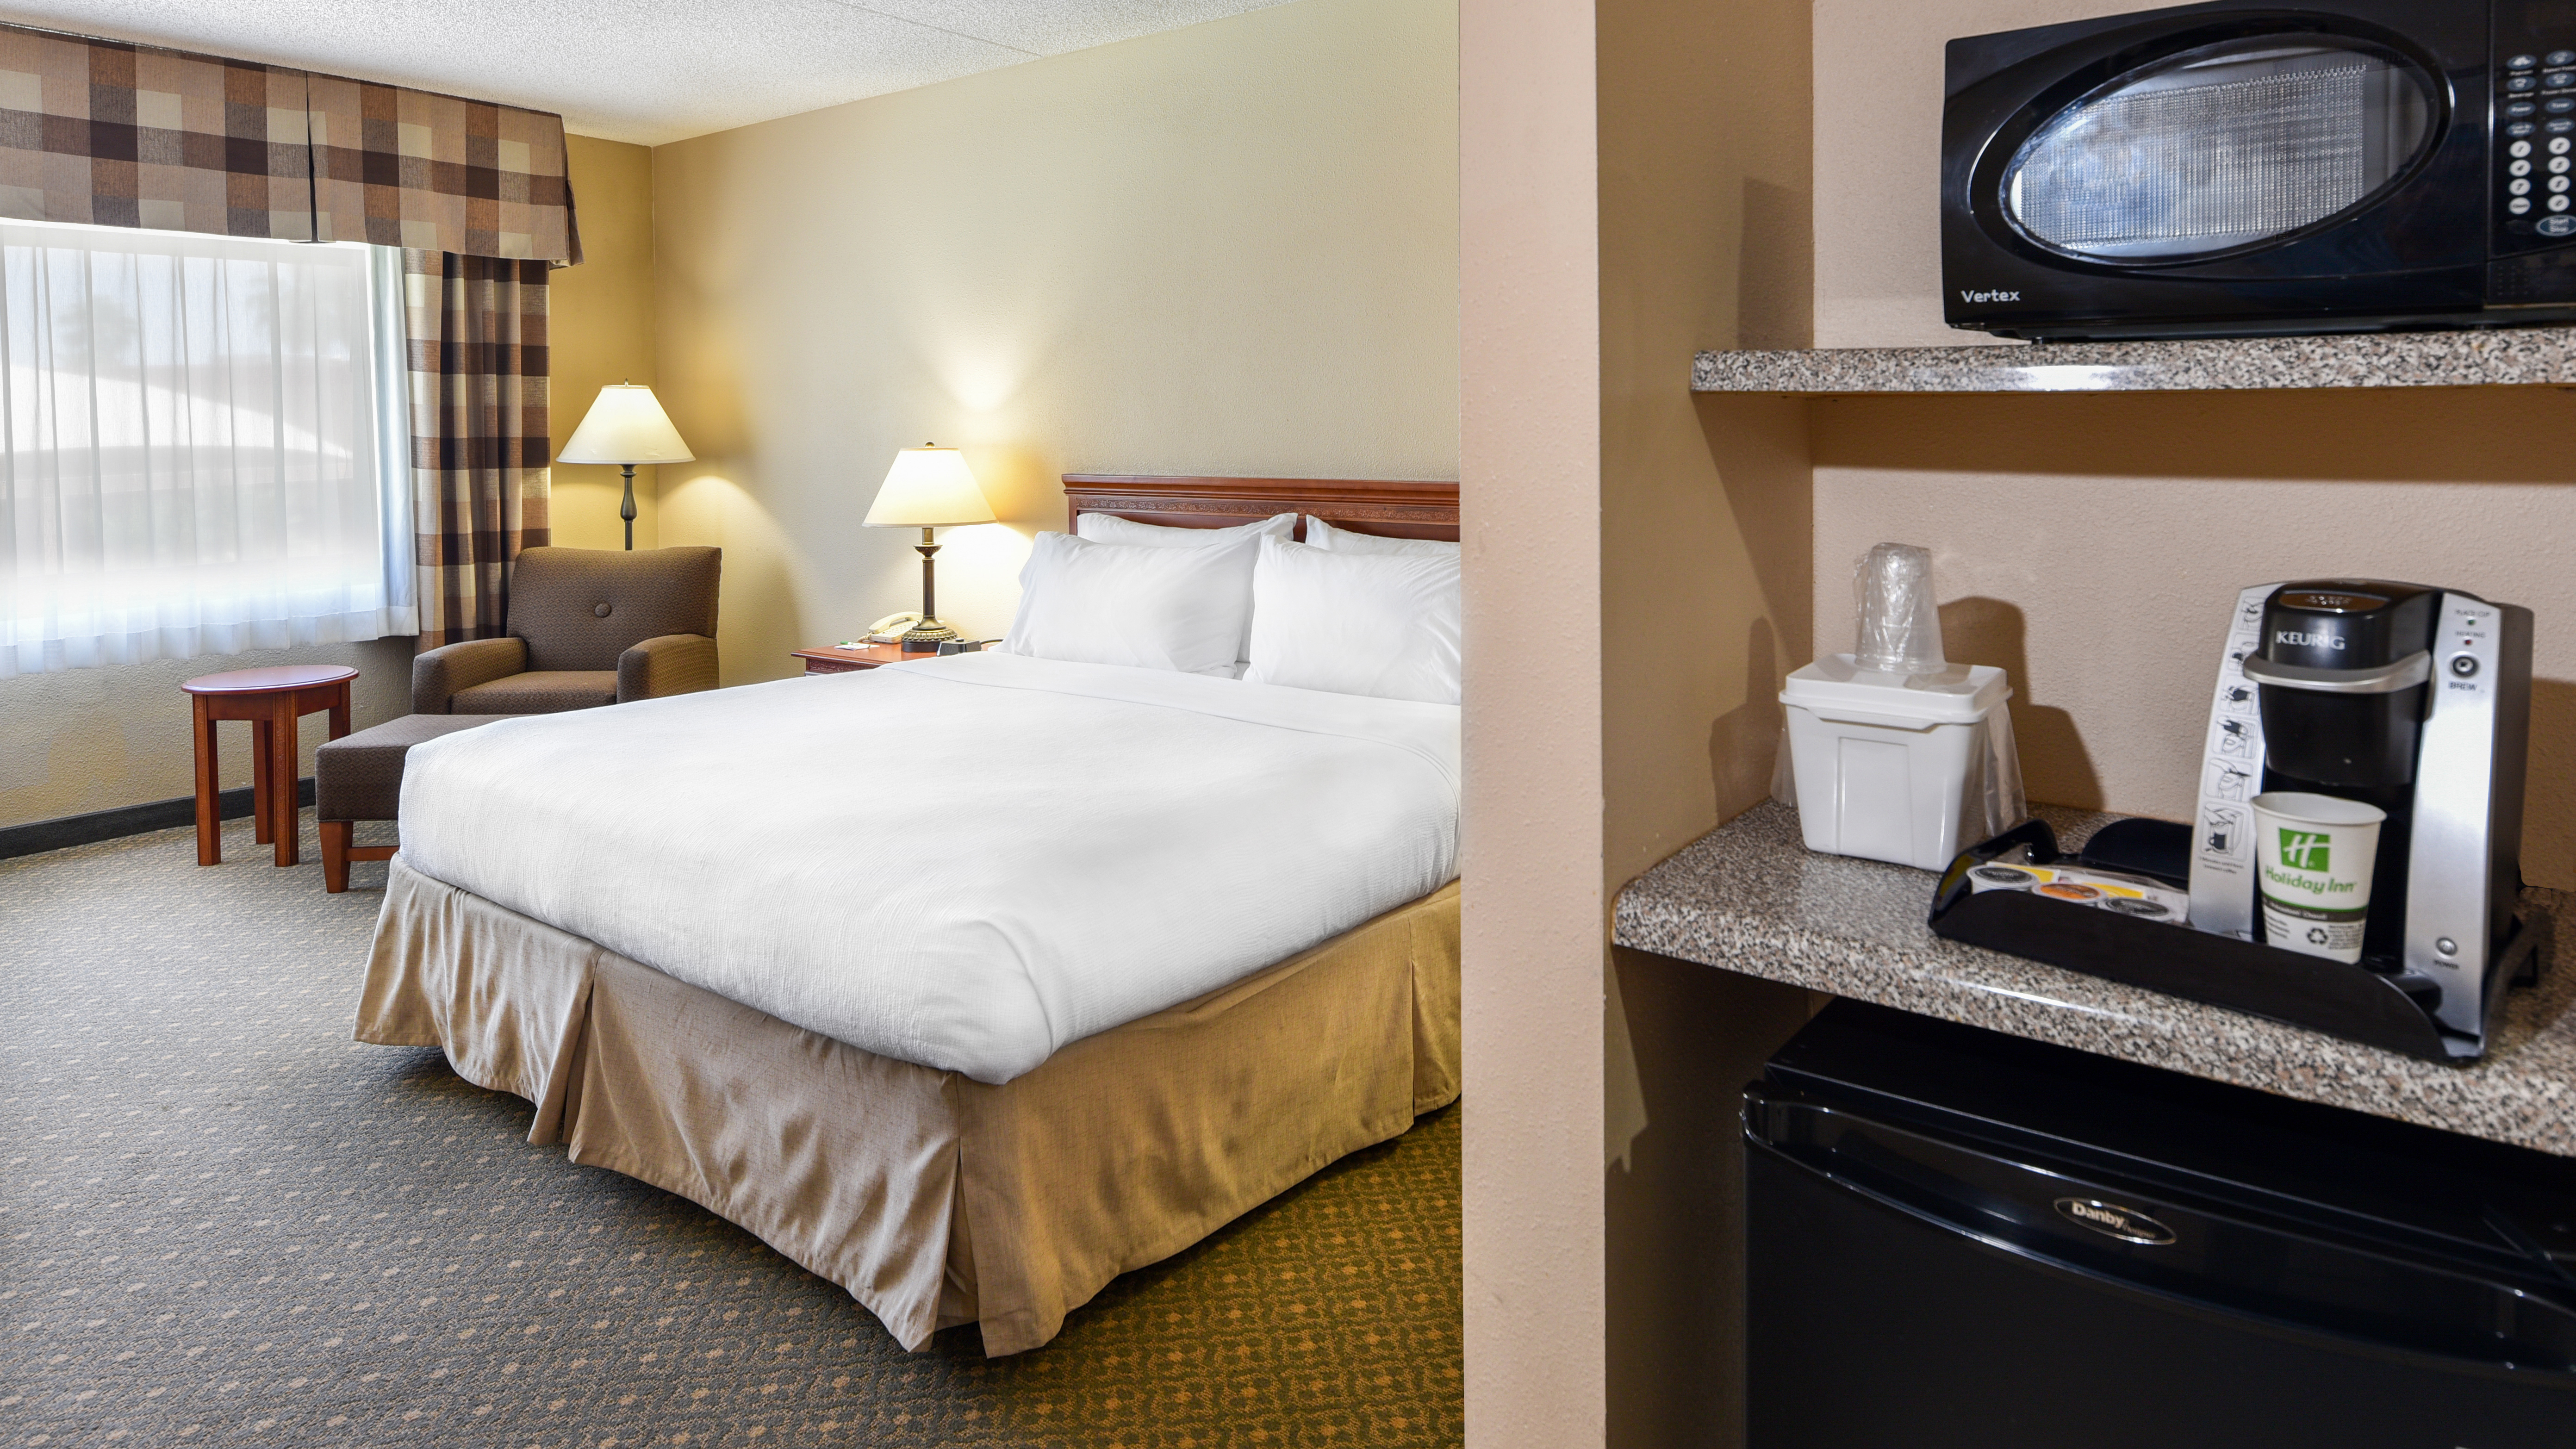 https://www.hotelsbyday.com/_data/default-hotel_image/2/10051/holiday-inn-casa-grande-47.jpg